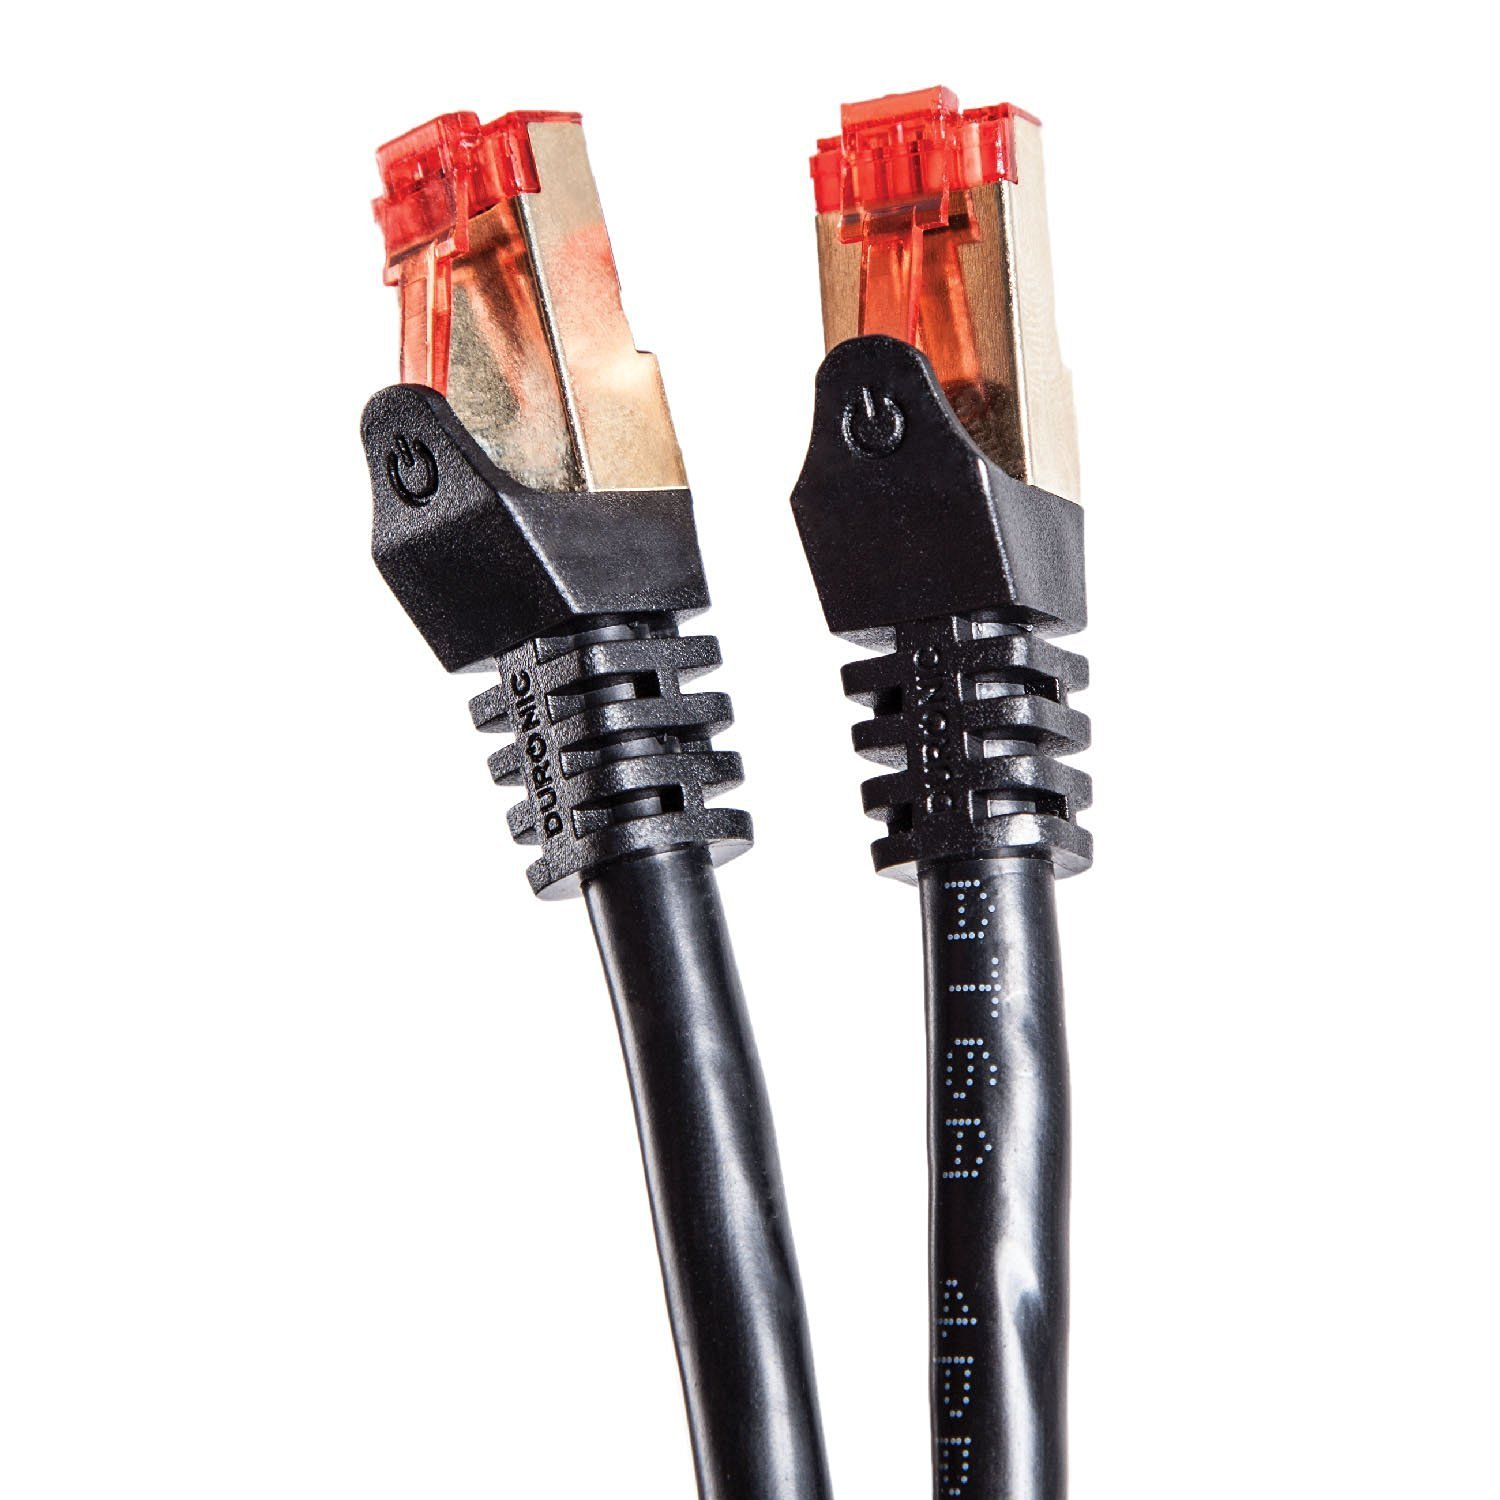 Cheap Cat6a Lan Cable Find Deals On Line At Alibabacom Rj45 To Cat6 550mhz Standards For Switch Router Modem Patch Get Quotations Duronic Black 10 Meter 328 Feet Stp Ftp Professional Gold Headed Shielded Network